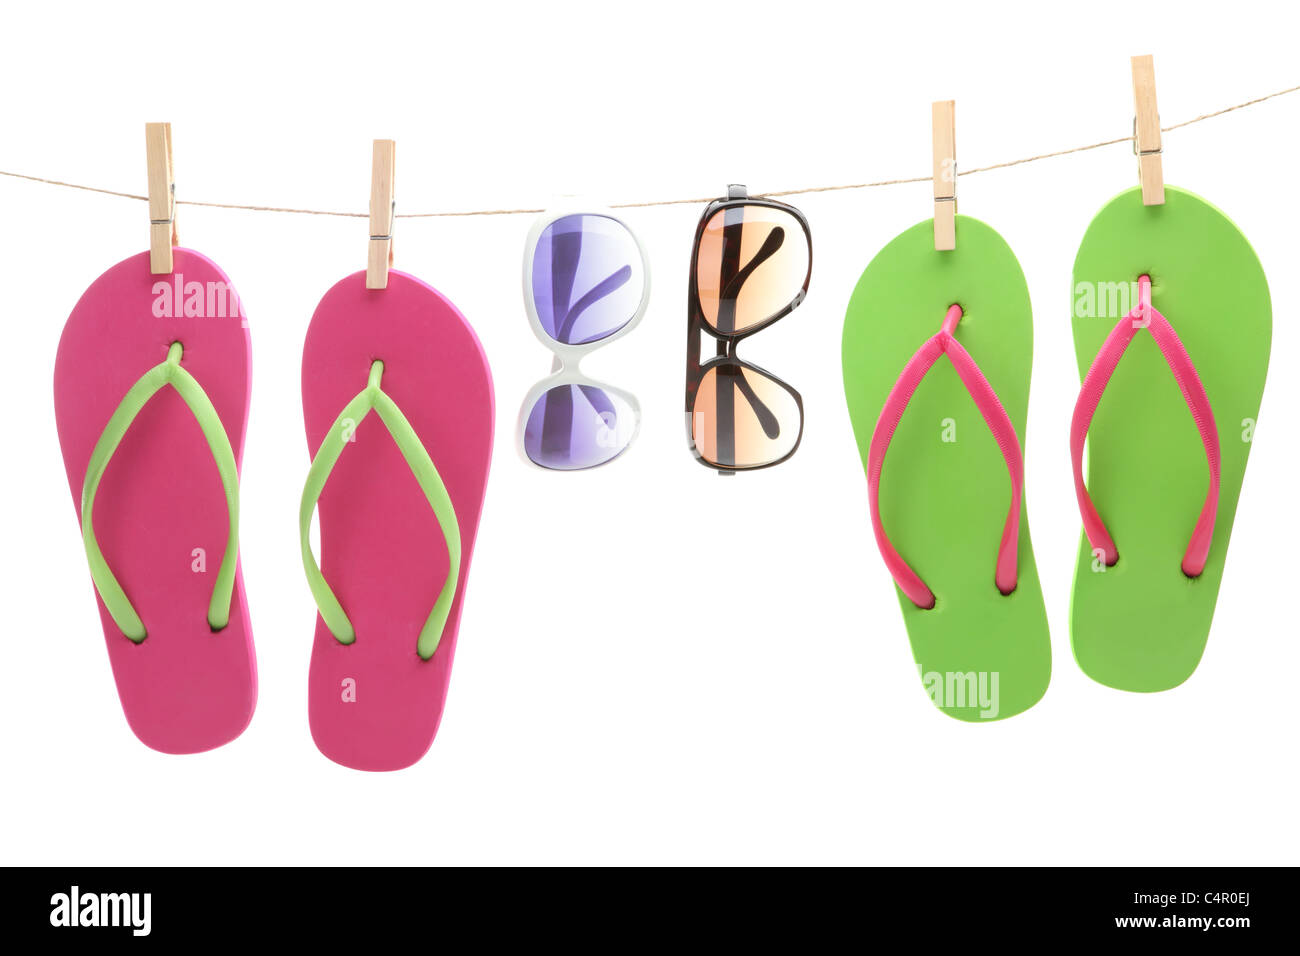 Flip-flop sandles and sunglasses hanging by clips from a clothes line - Stock Image